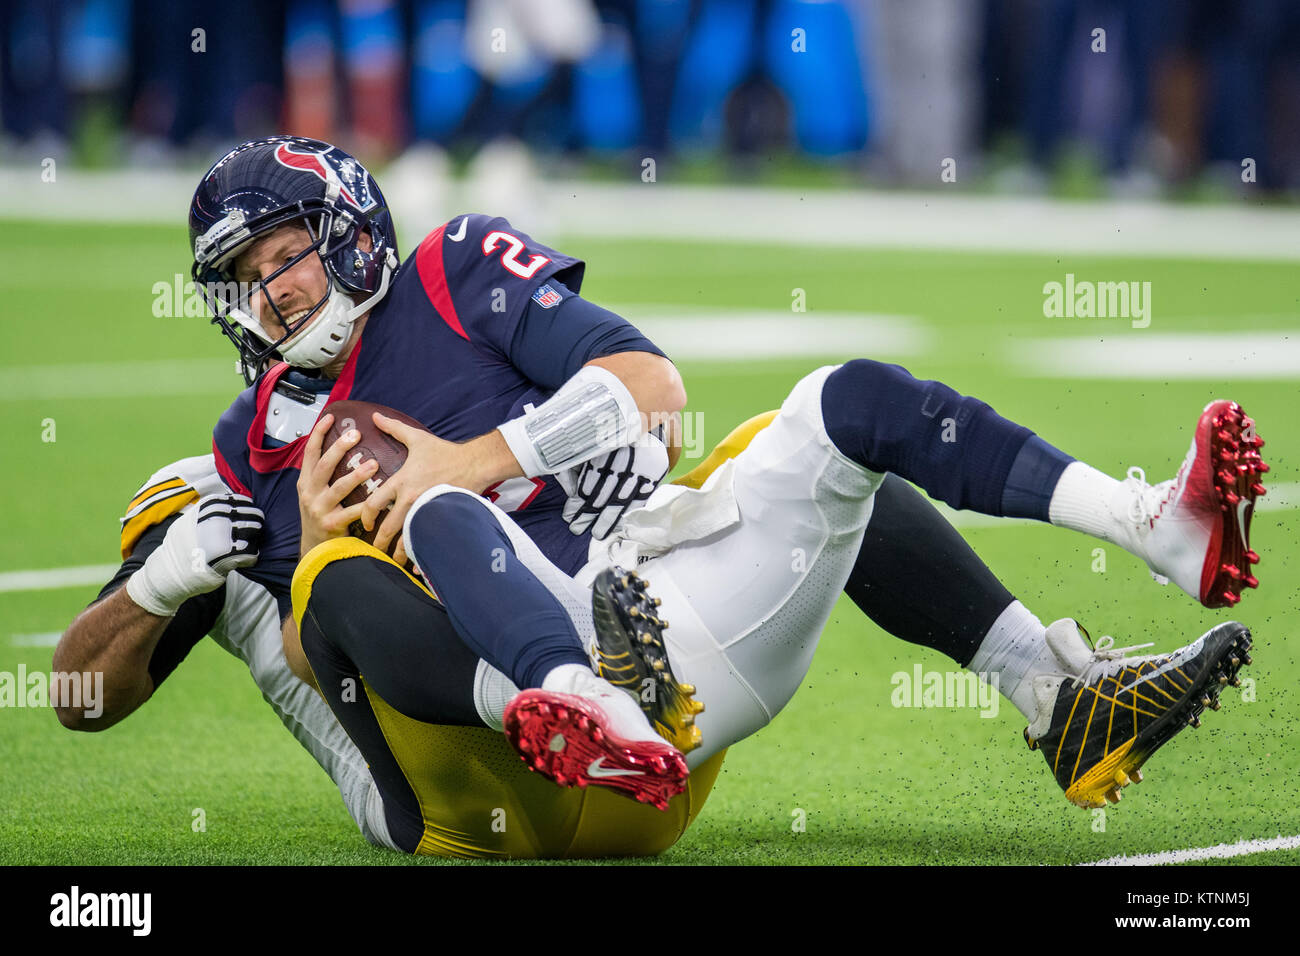 Houston, TX, USA. 25th Dec, 2017. Houston Texans quarterback T.J. Yates (2) is sacked by Pittsburgh Steelers defensive - Stock Image